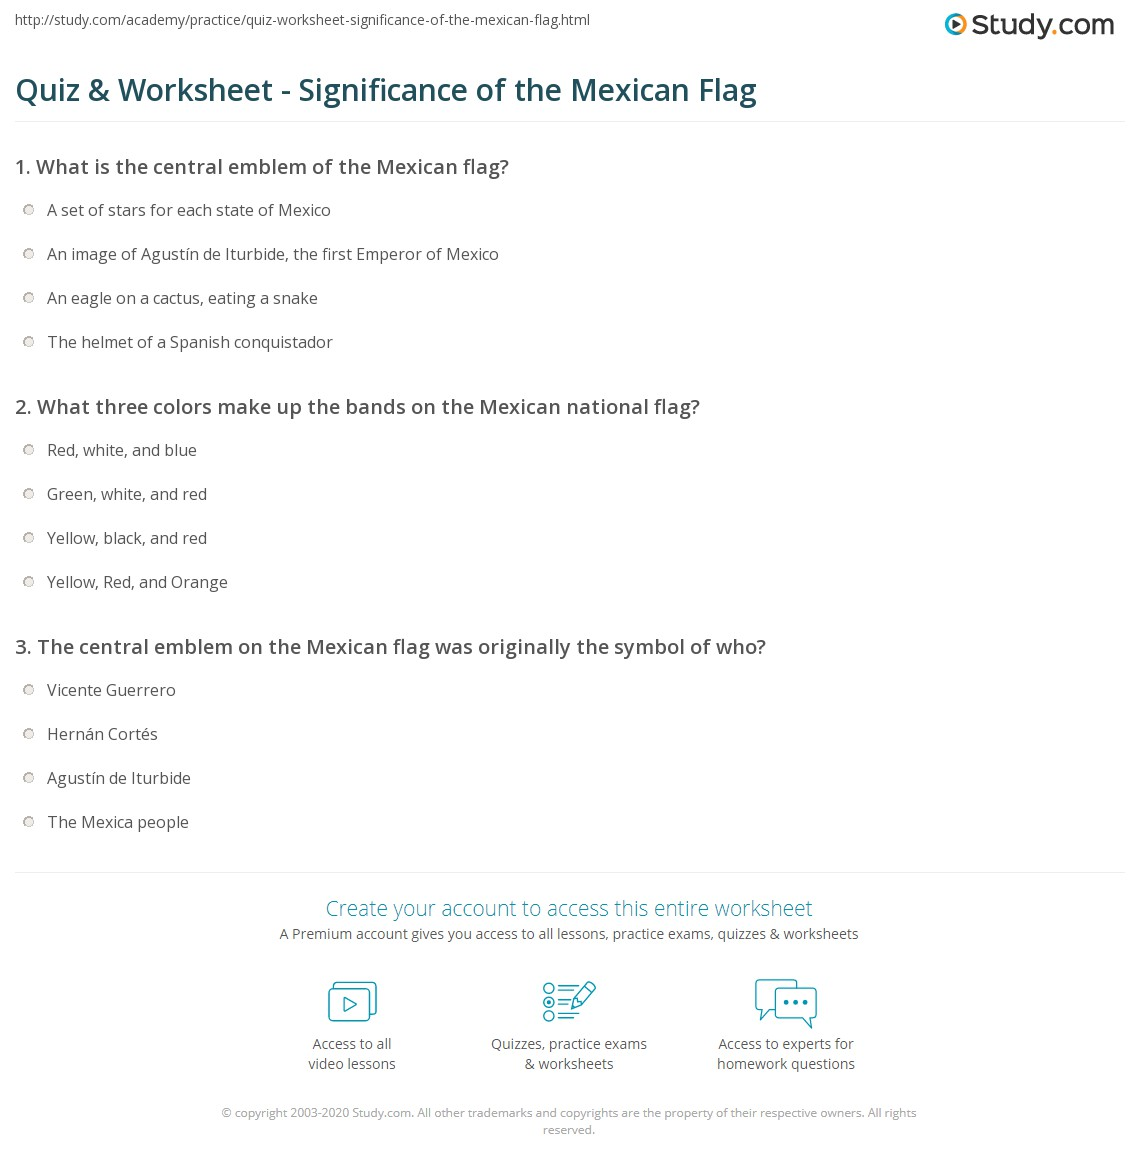 Quiz worksheet significance of the mexican flag study what three colors make up the bands on the mexican national flag biocorpaavc Images